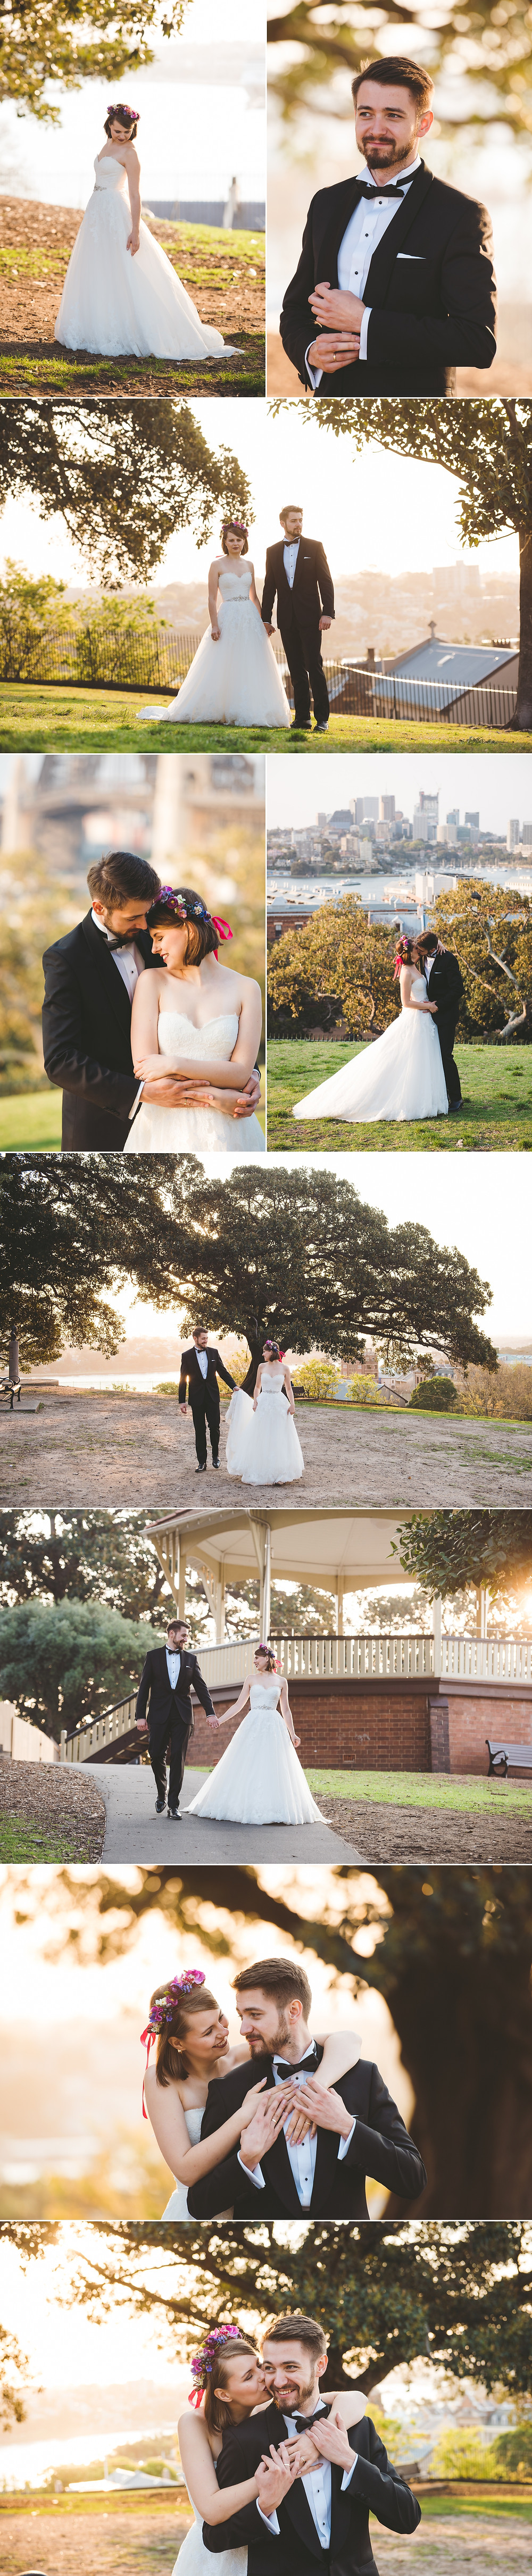 Wedding Photography, Sydney, Observatory Hill